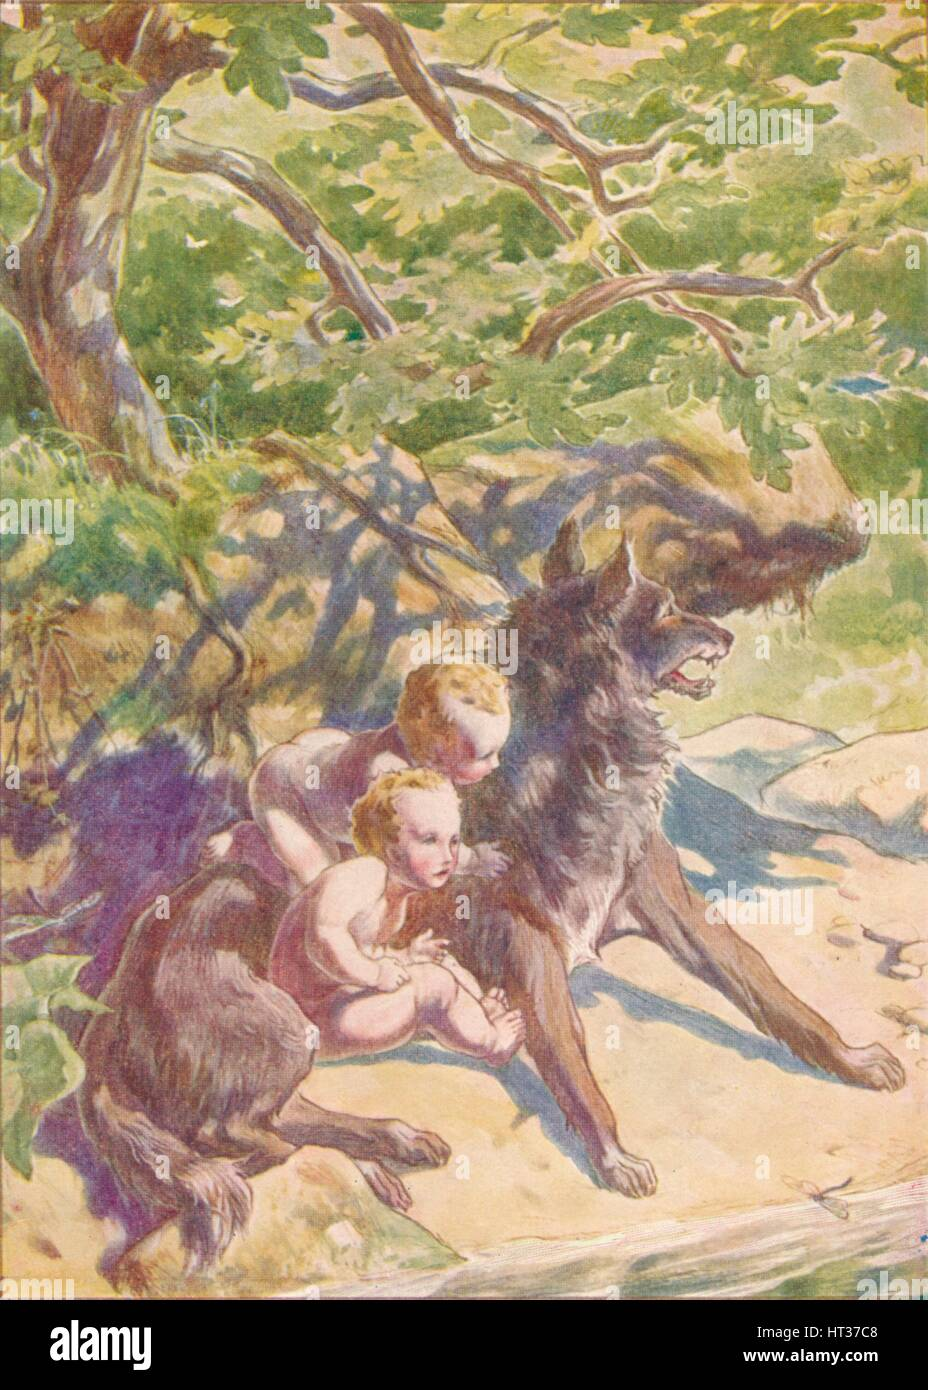 'Down to the river presently came a she-wolf to drink', c1912 (1912). Artist: Ernest Dudley Heath. - Stock Image